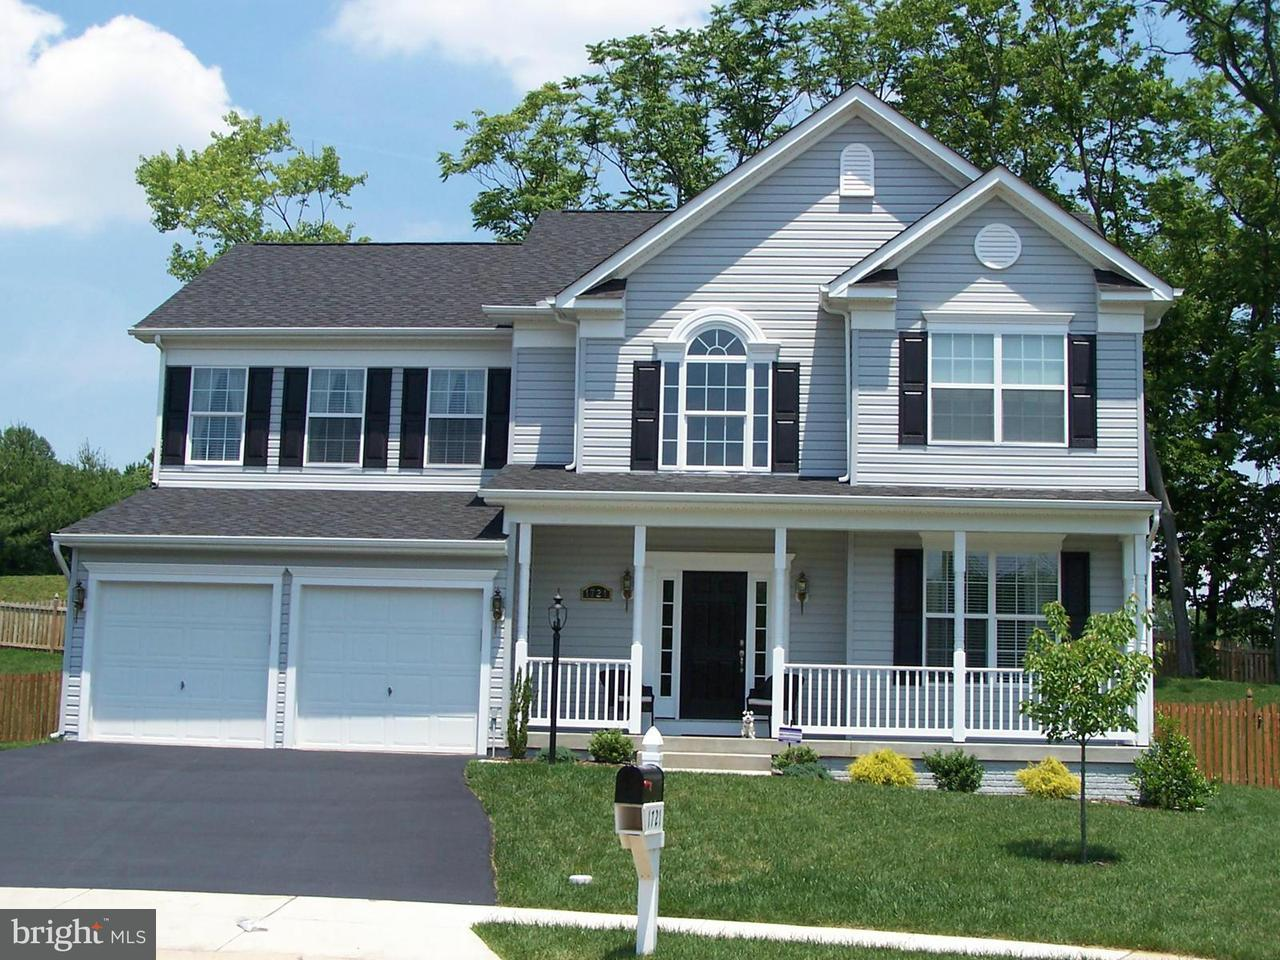 Single Family Home for Sale at BURKITTSVILLE Road BURKITTSVILLE Road Jefferson, Maryland 21755 United States